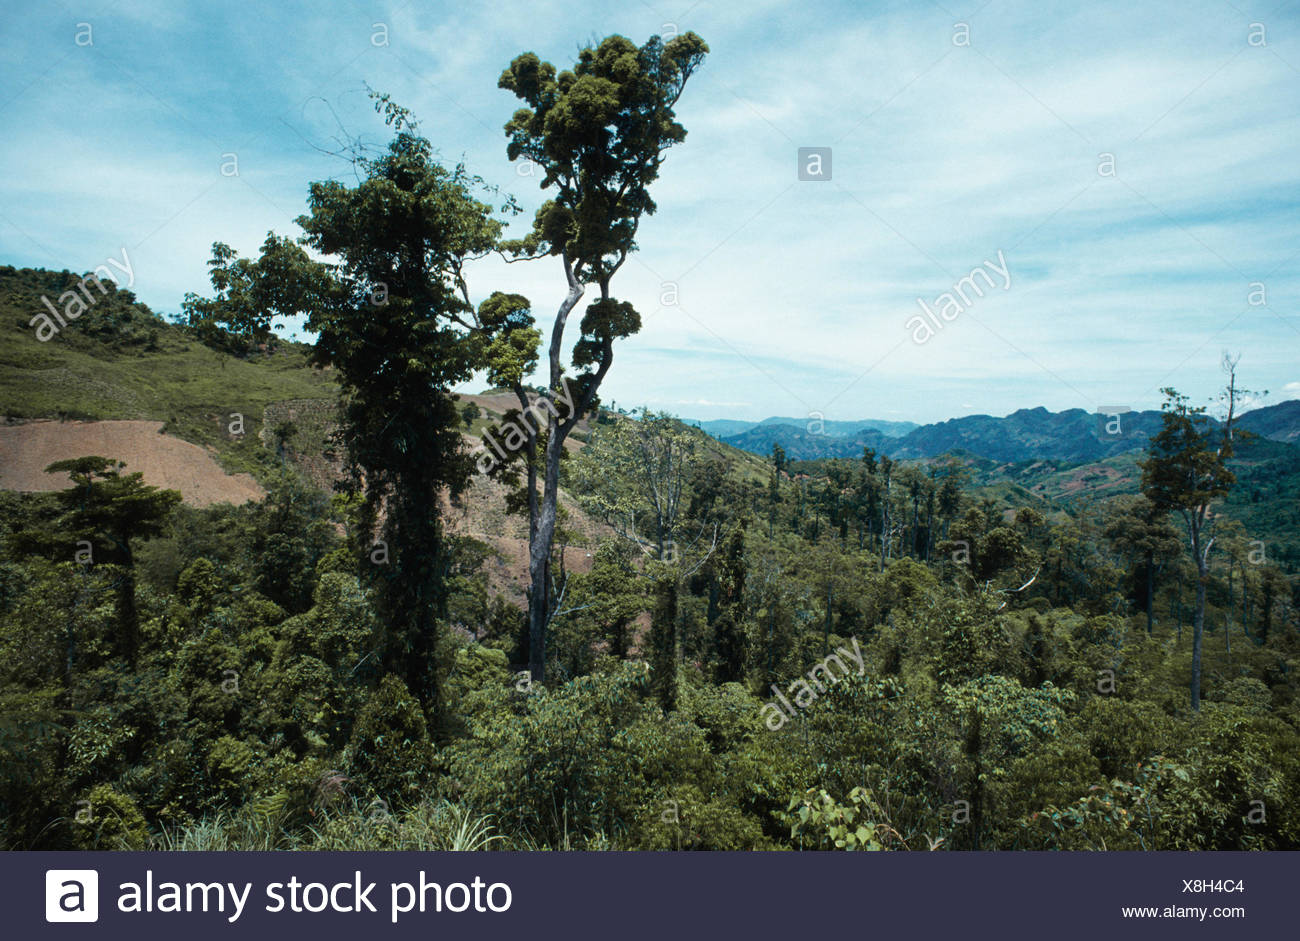 relic of primary forest, Philippines, Cebu - Stock Image